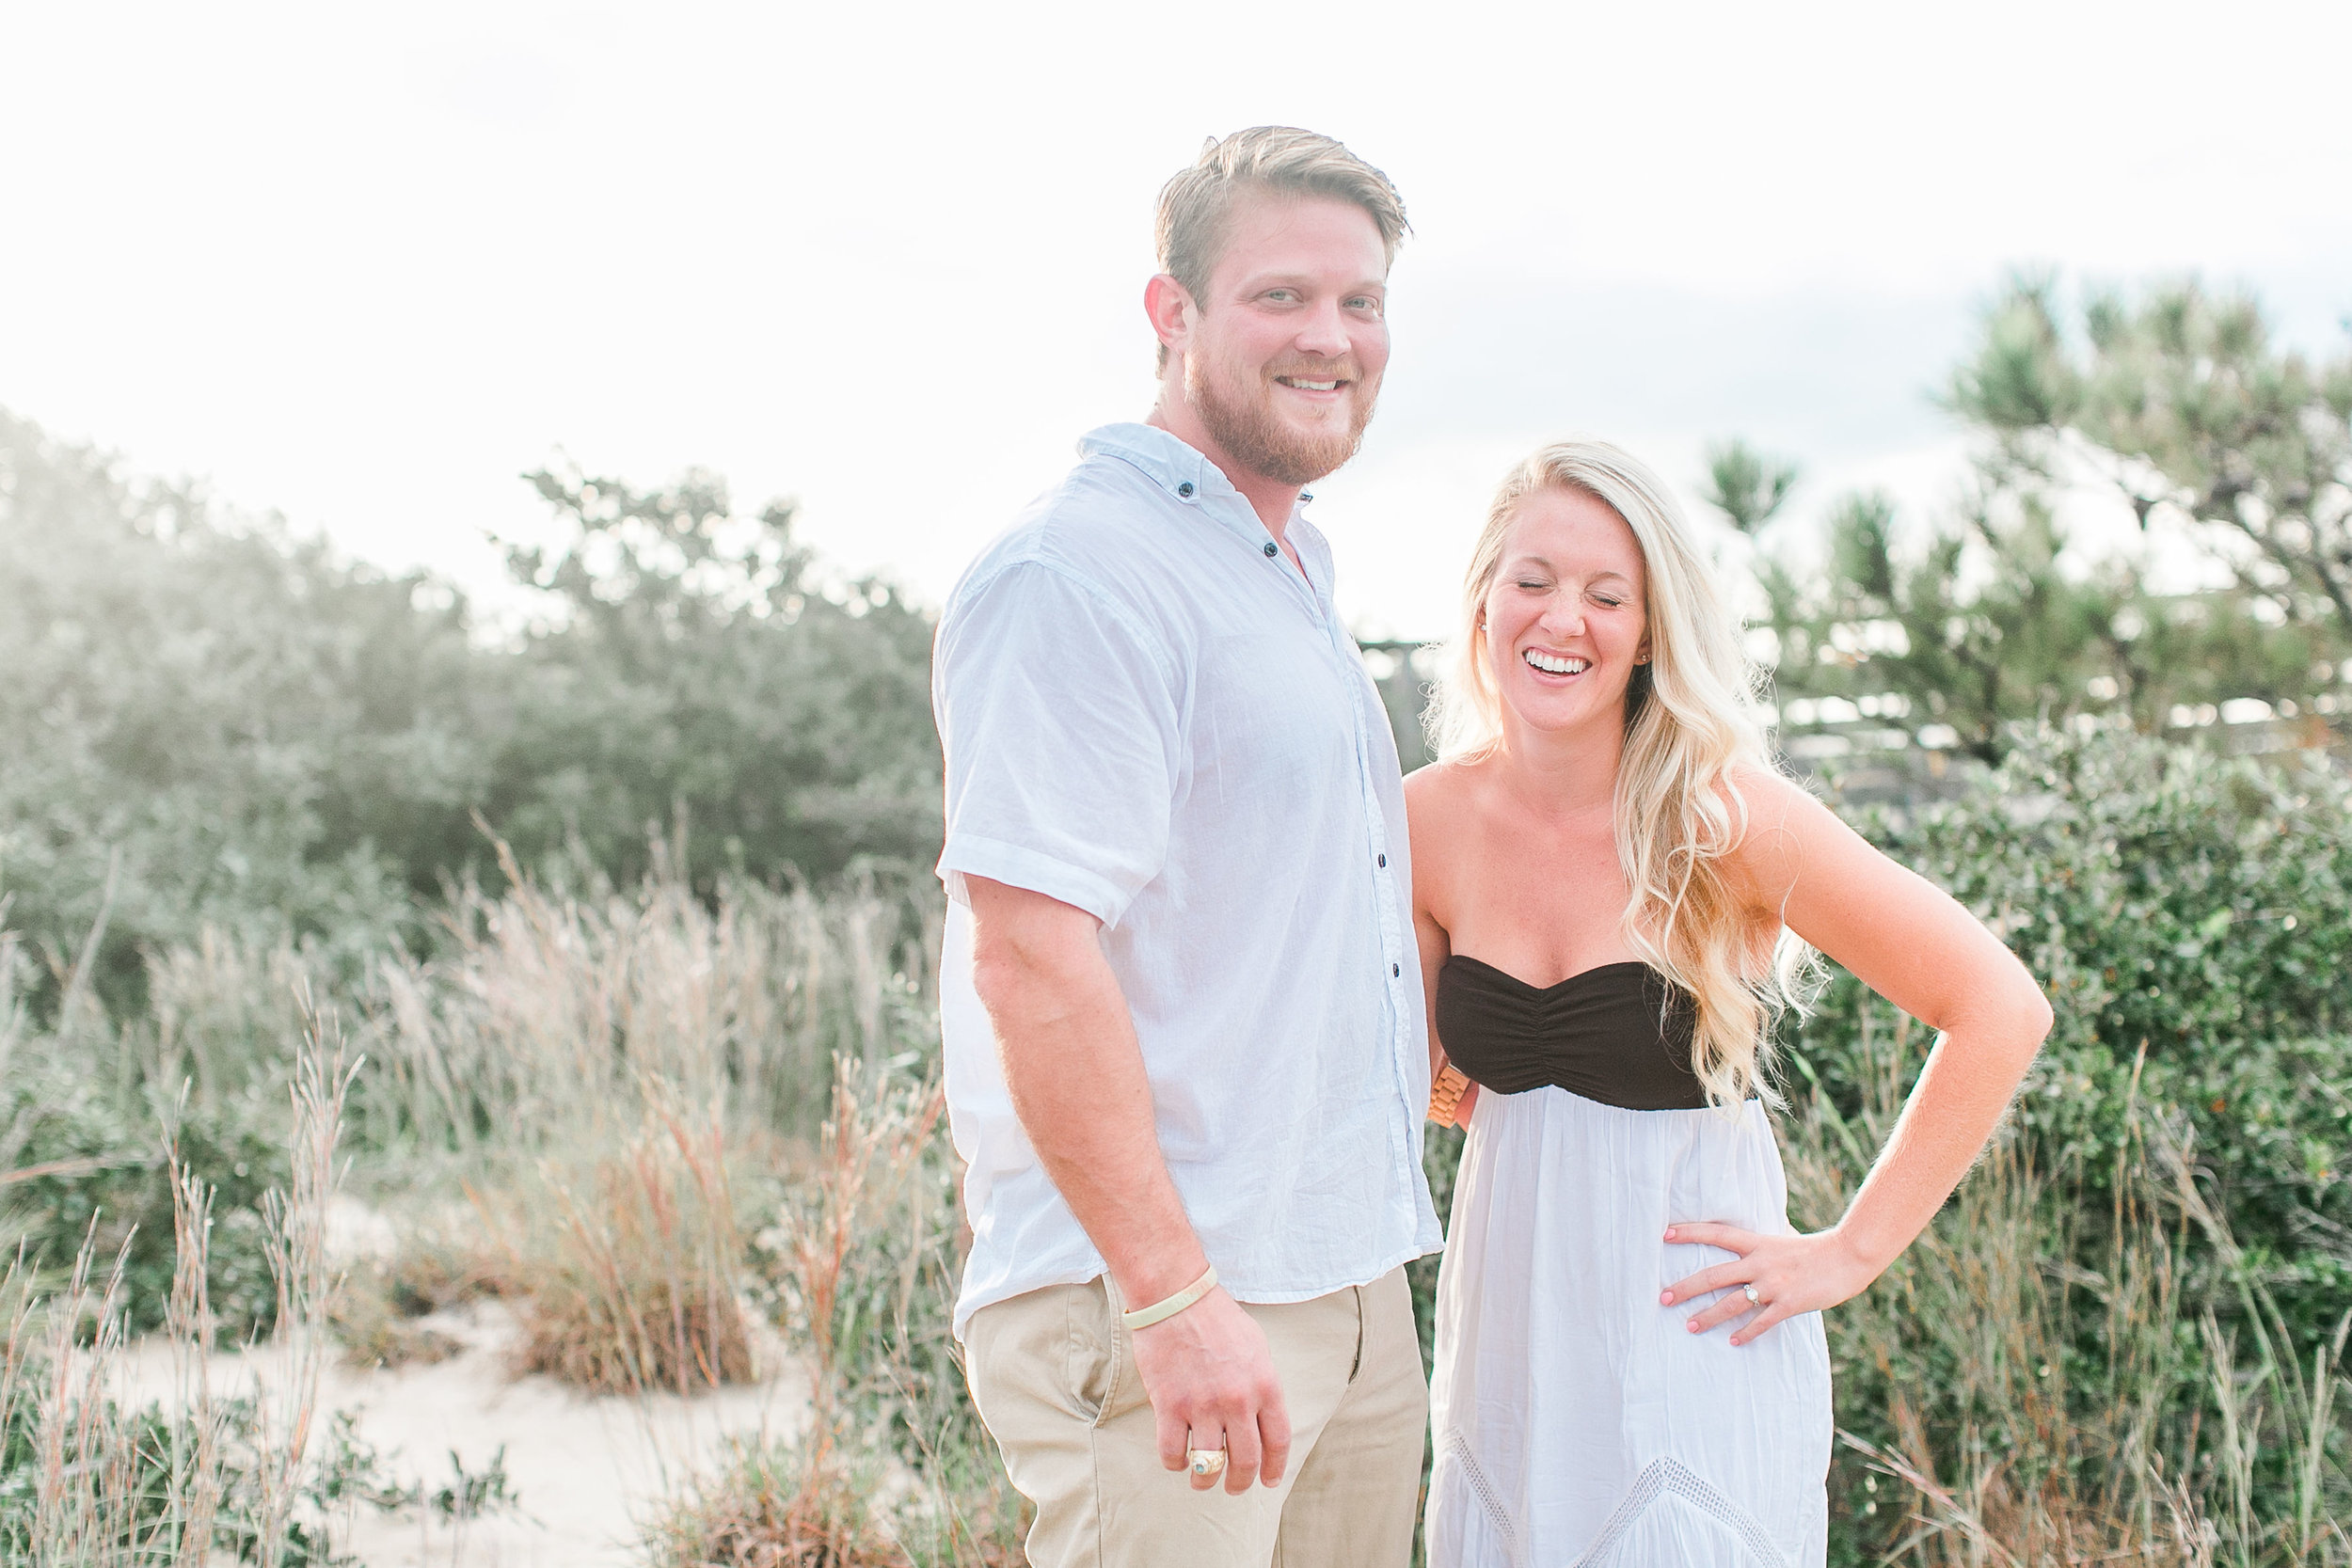 Chelsea&Jordan_Engaged-20.jpg